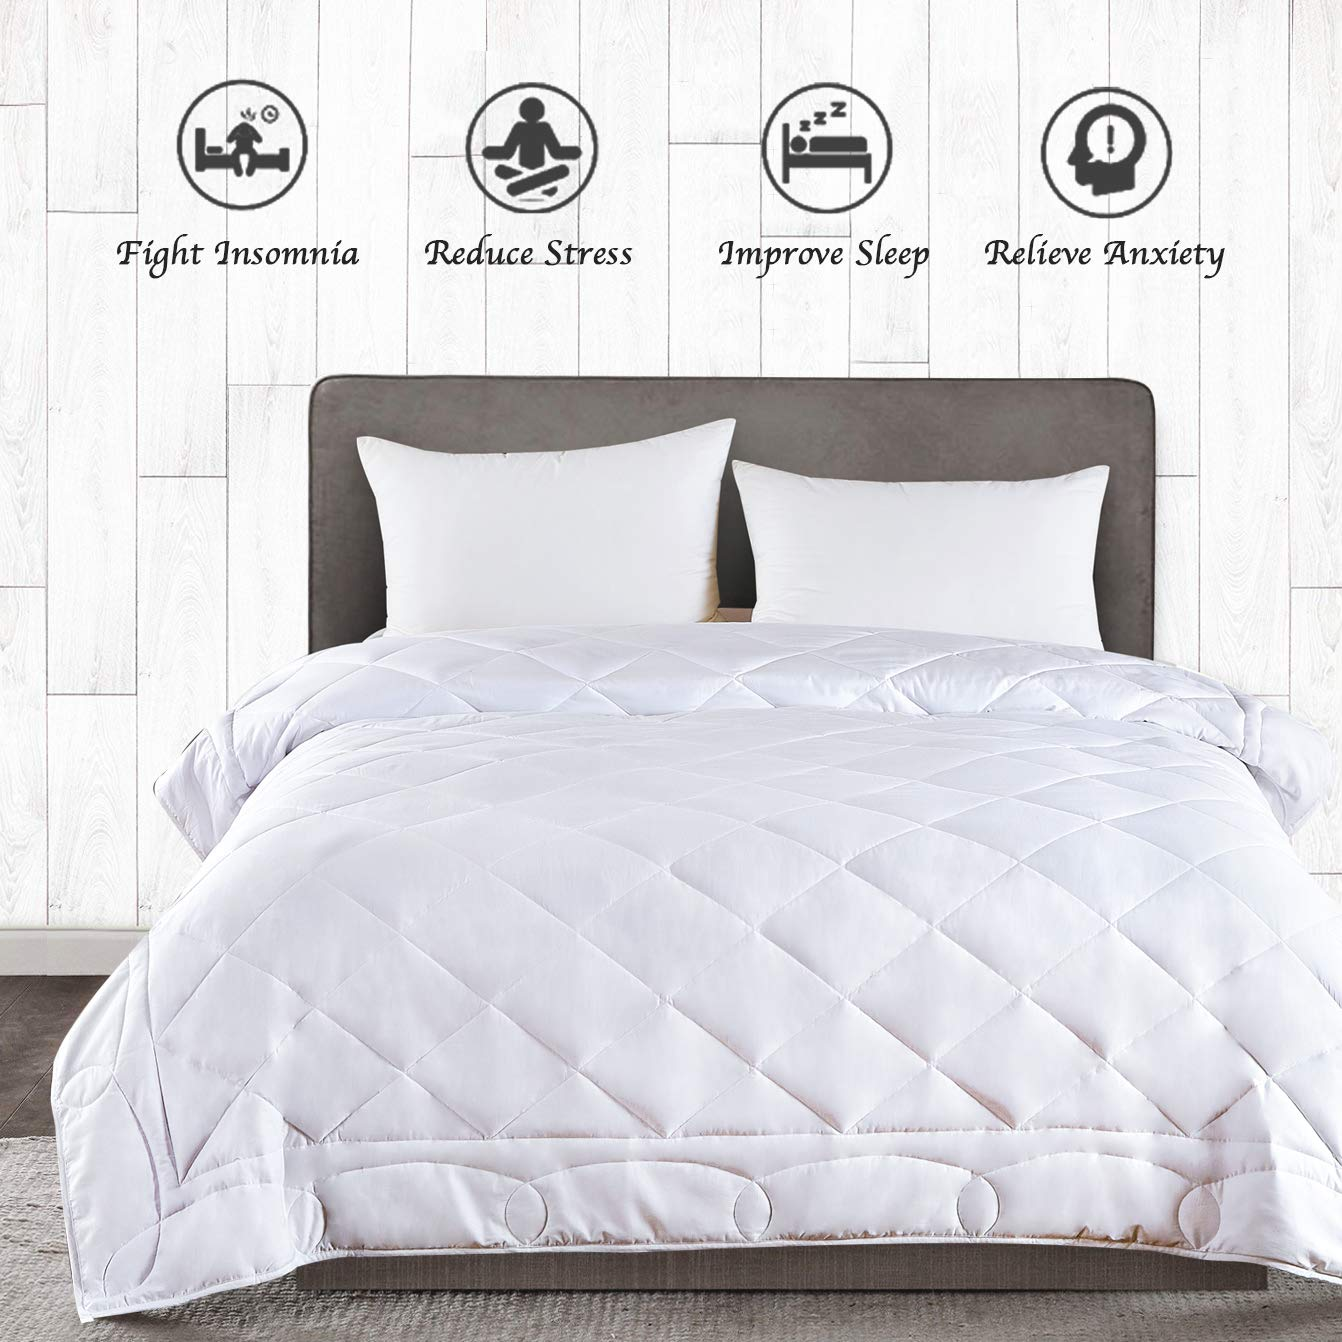 JOLLYVOGUE King Size Weighted Blanket(20lbs,88x104Inches),Queen or King Size Bed Adult Weighted Blanket with 100% Soft Cotton and Glass Beads-White